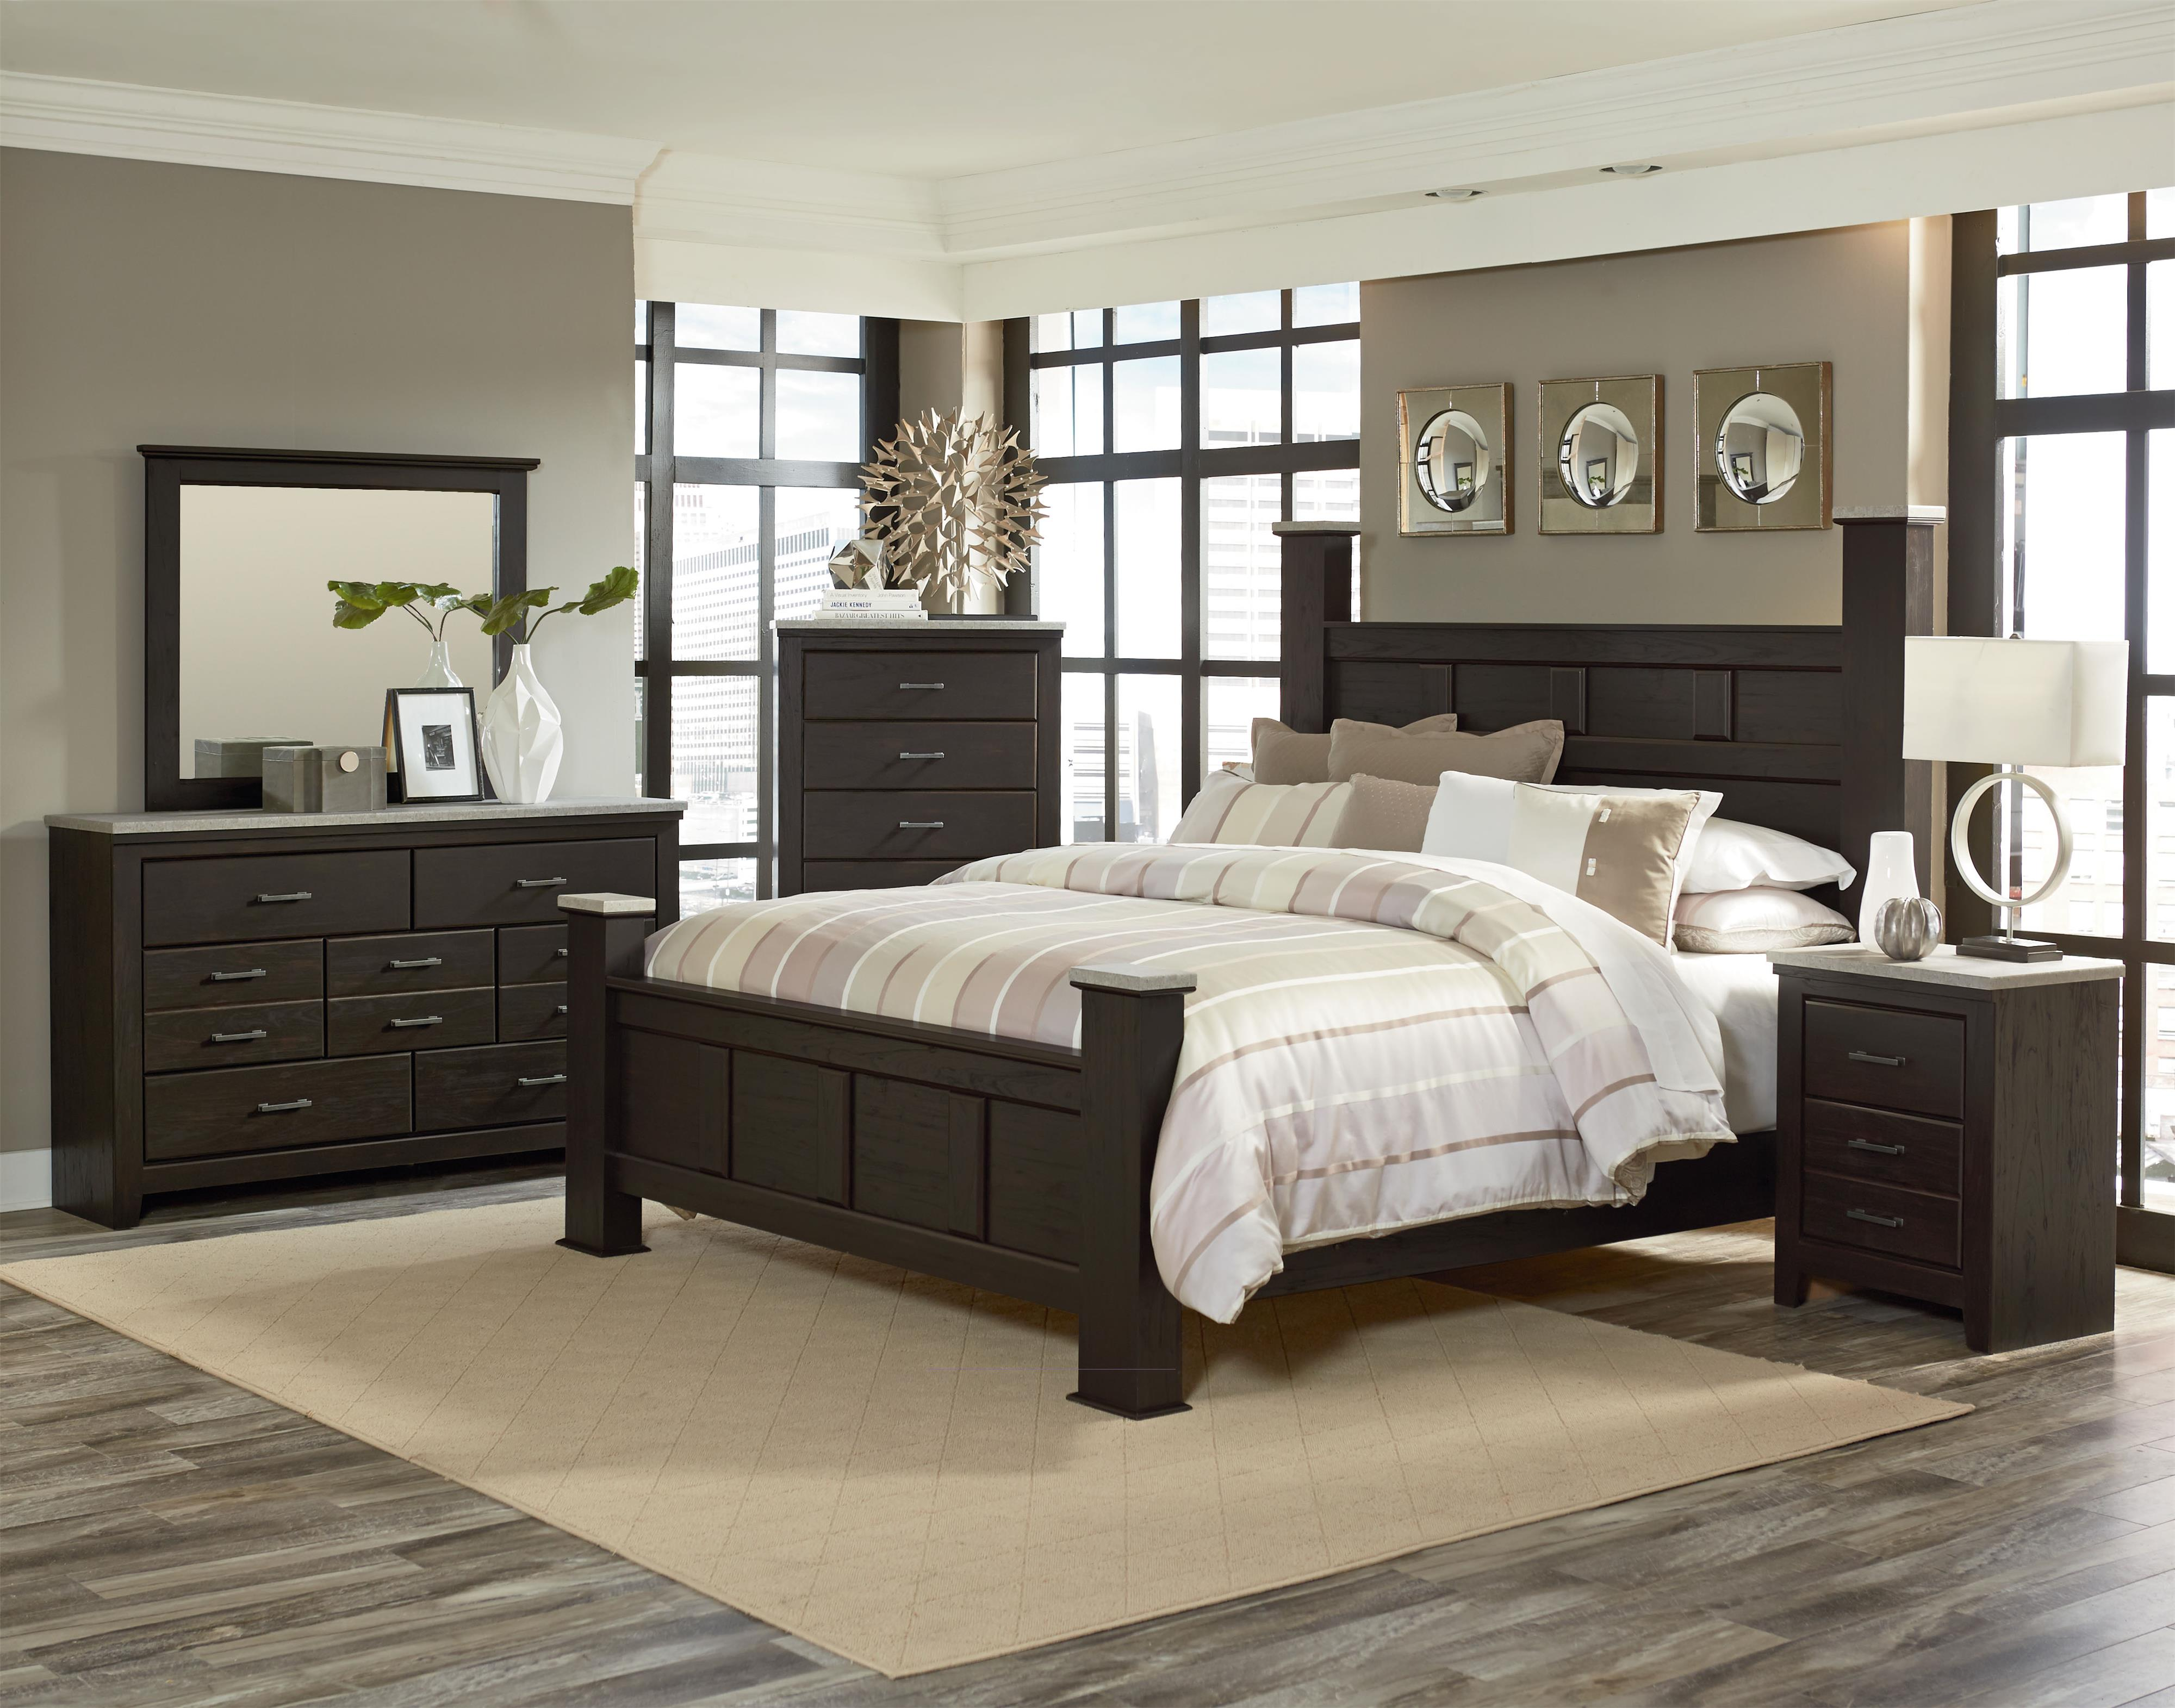 Standard Furniture Stonehill Dark Queen Bedroom Group - Item Number: 69350 Q  Bedroom Group 1